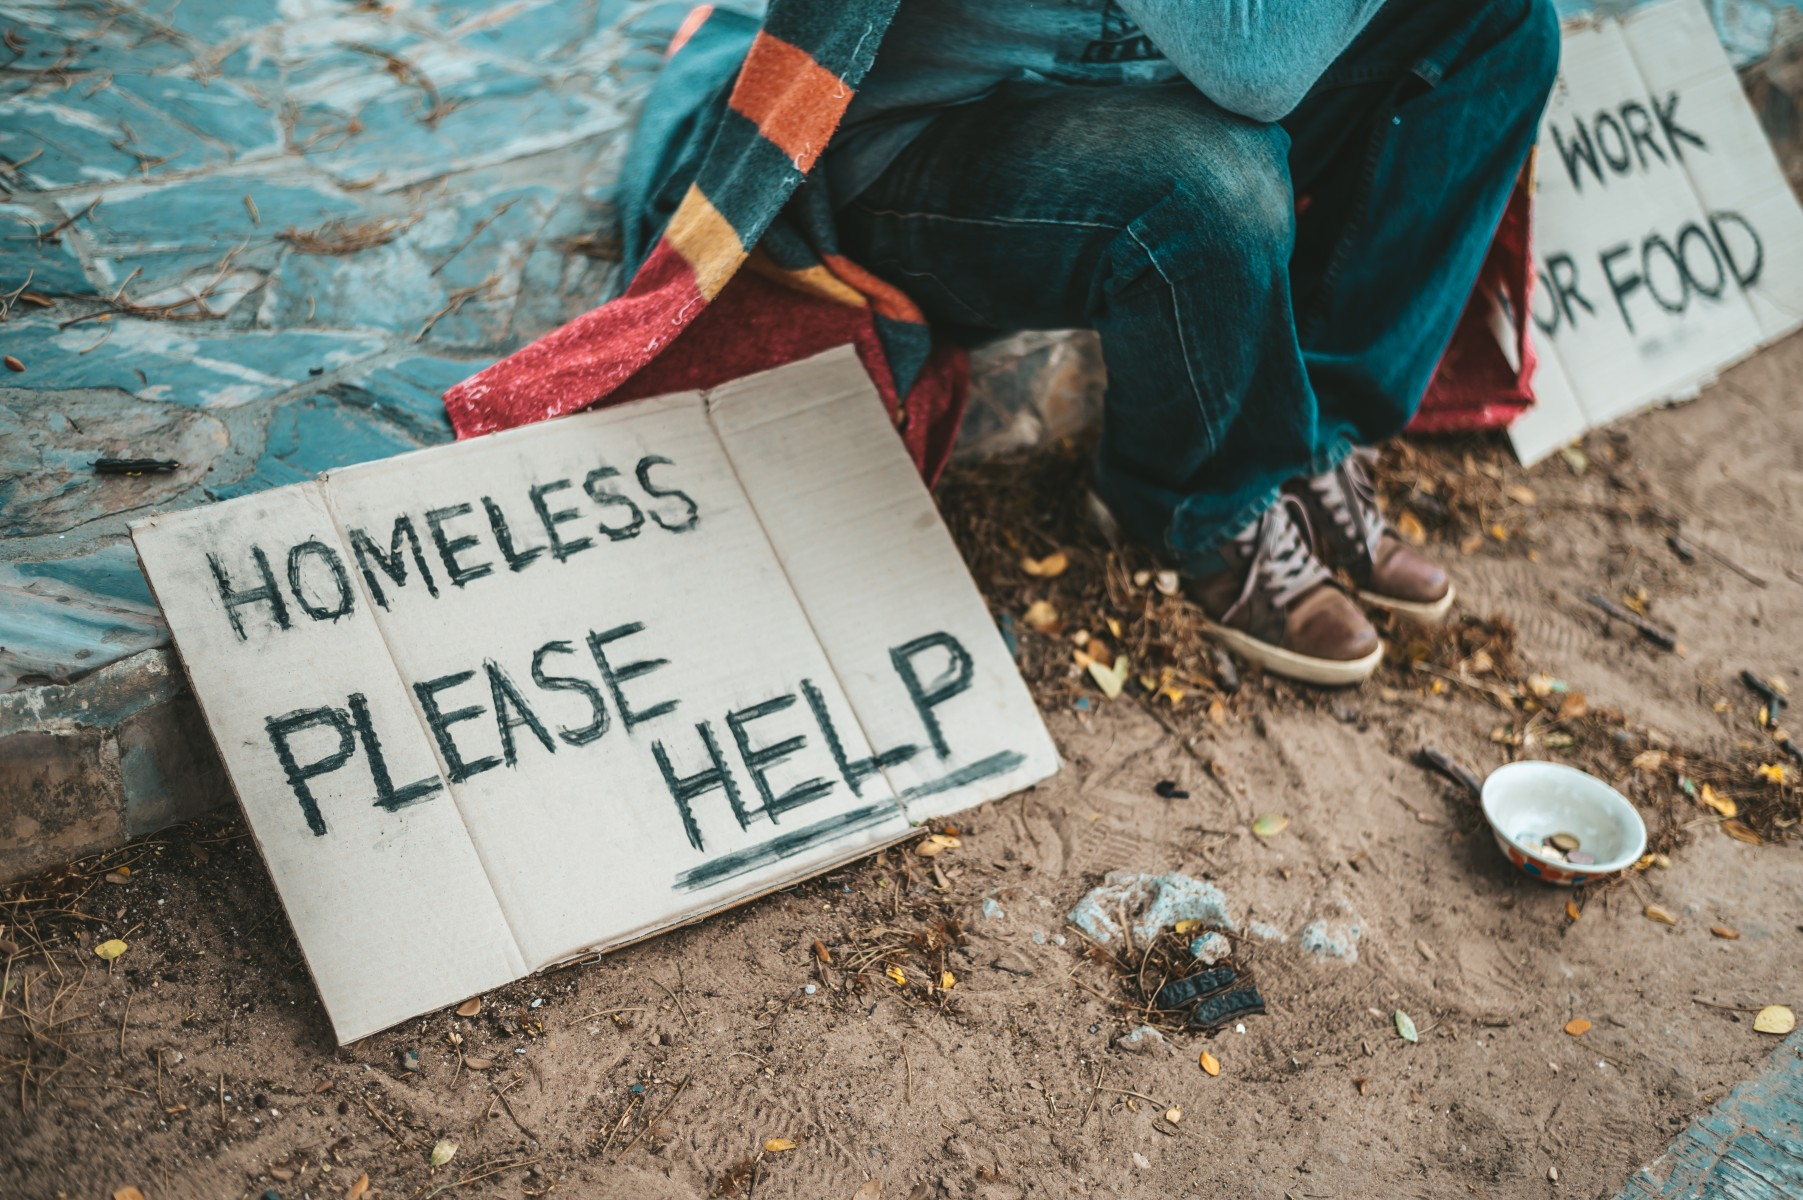 """A person sits on a curb with a cardboard """"Homeless, Please Help"""" sign"""